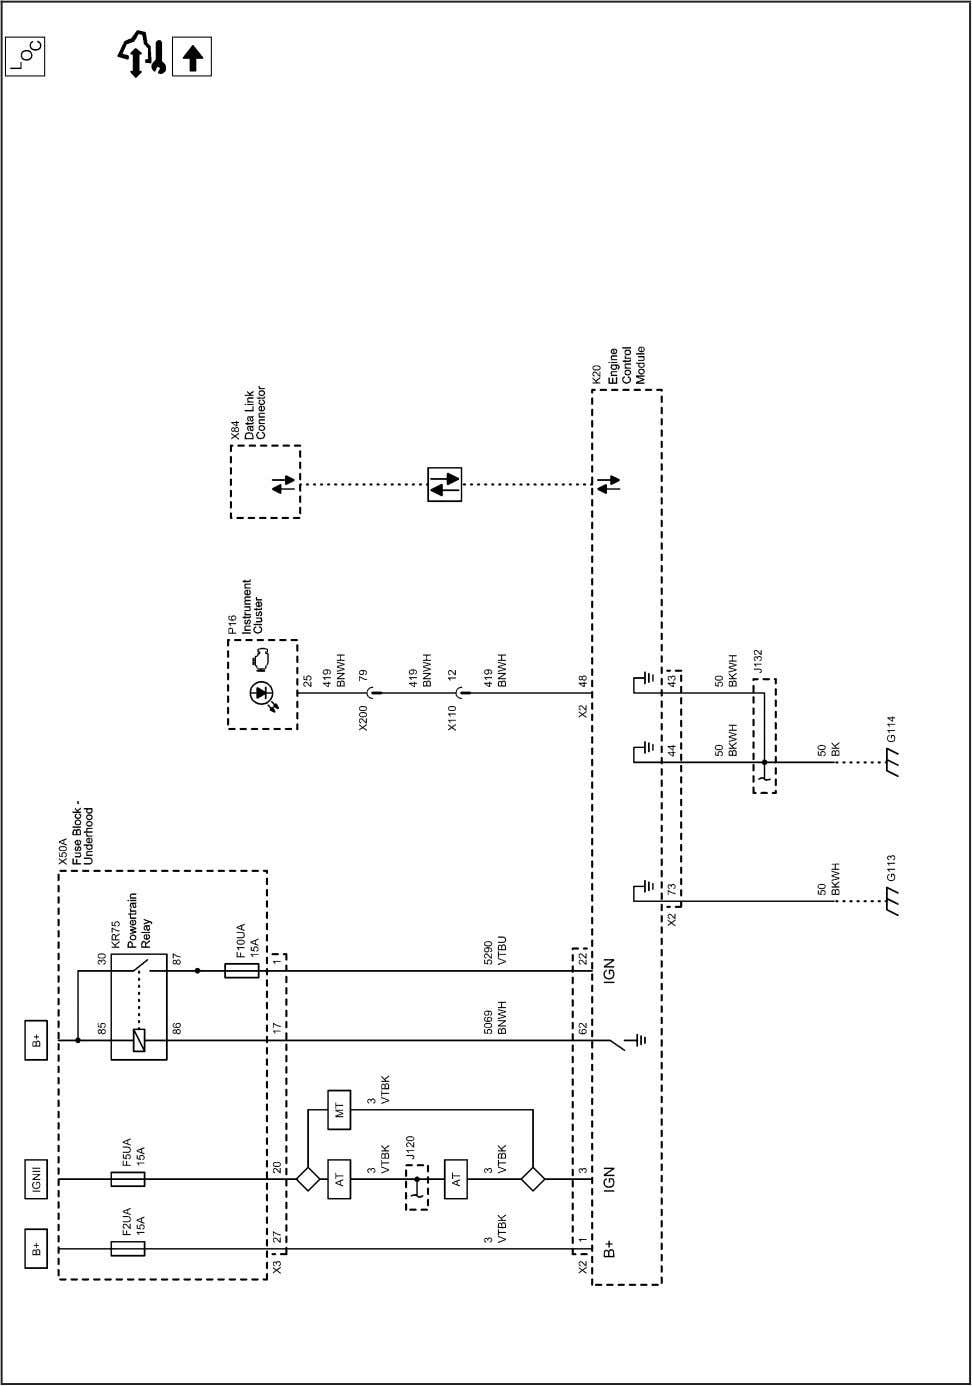 and Fuel - 1.6L (LXT) 2203073 Engine Controls Schematics (Power, Ground, Serial Data and MIL) 2010